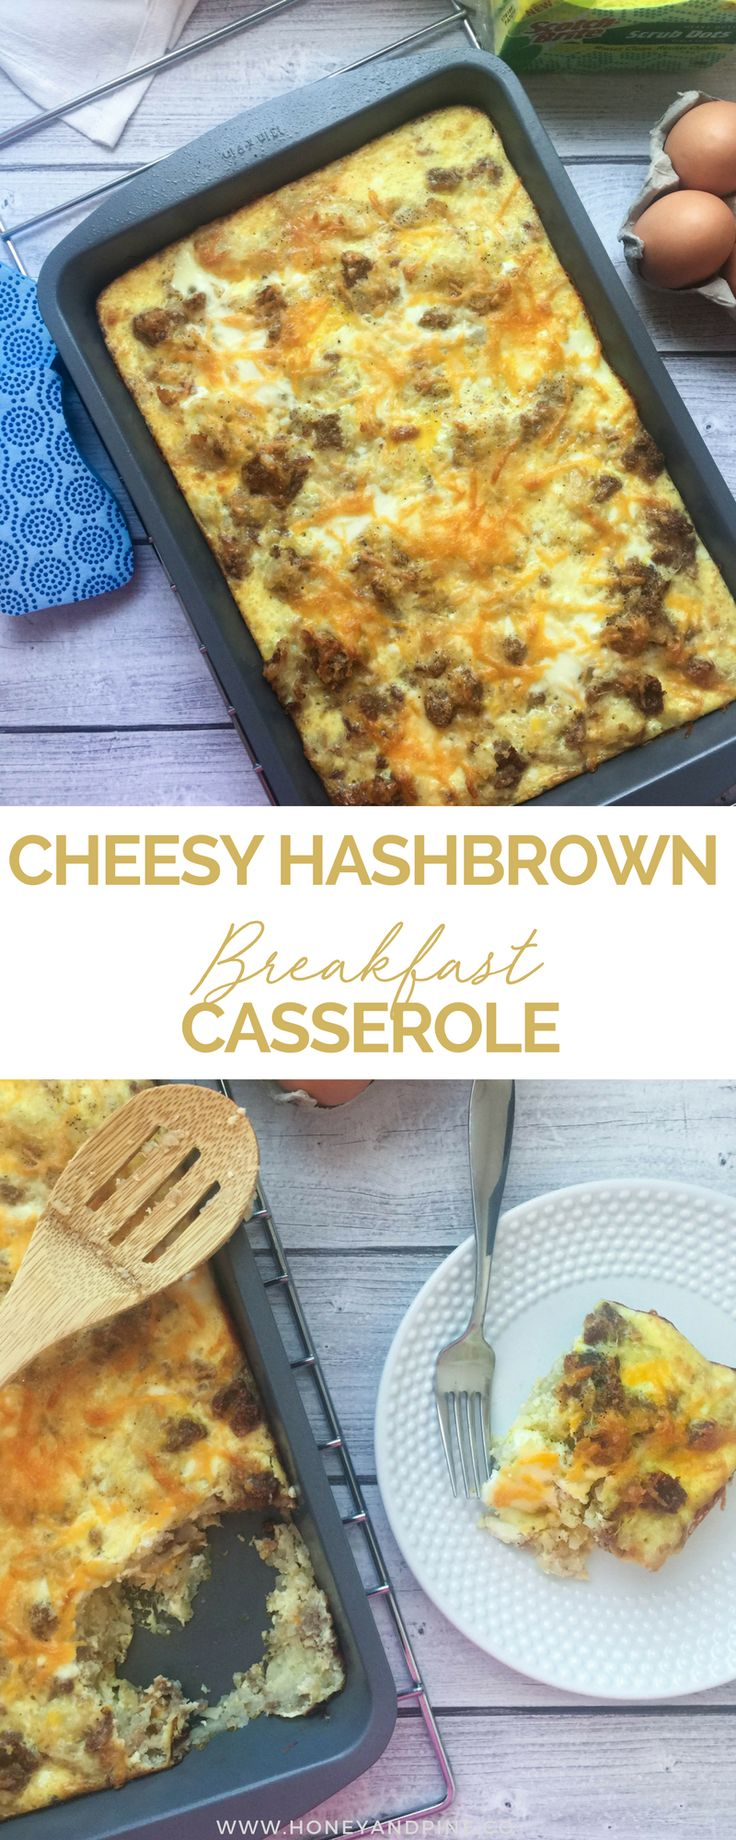 Need to feed a crowd for breakfast? This cheesy sausage hashbrown breakfast casserole is just the thing you need! Get the full breakfast recipe on Honey and Pine! #PowerOfDots #ad